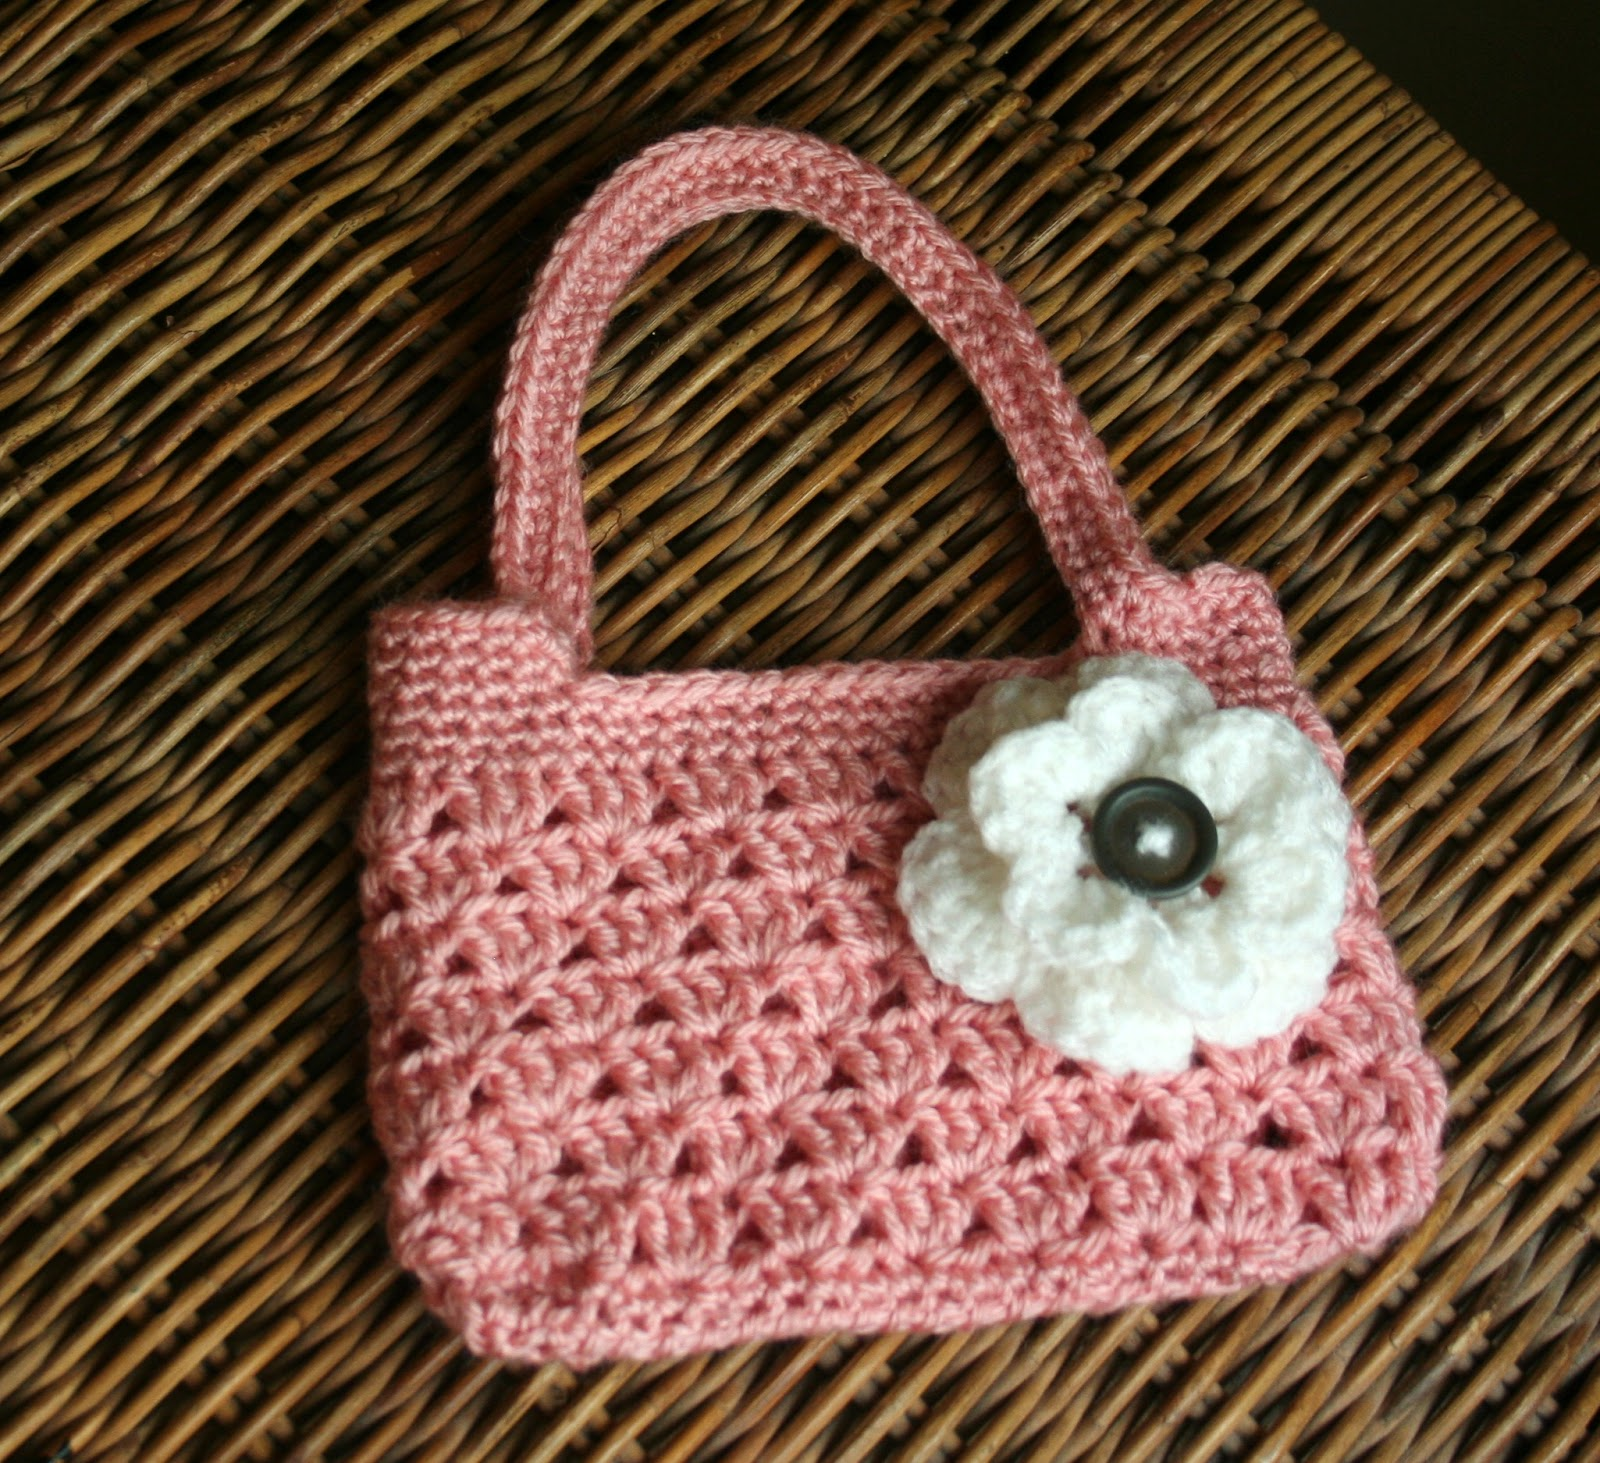 Tampa Bay Crochet: Free Easy Crochet Purse Pattern